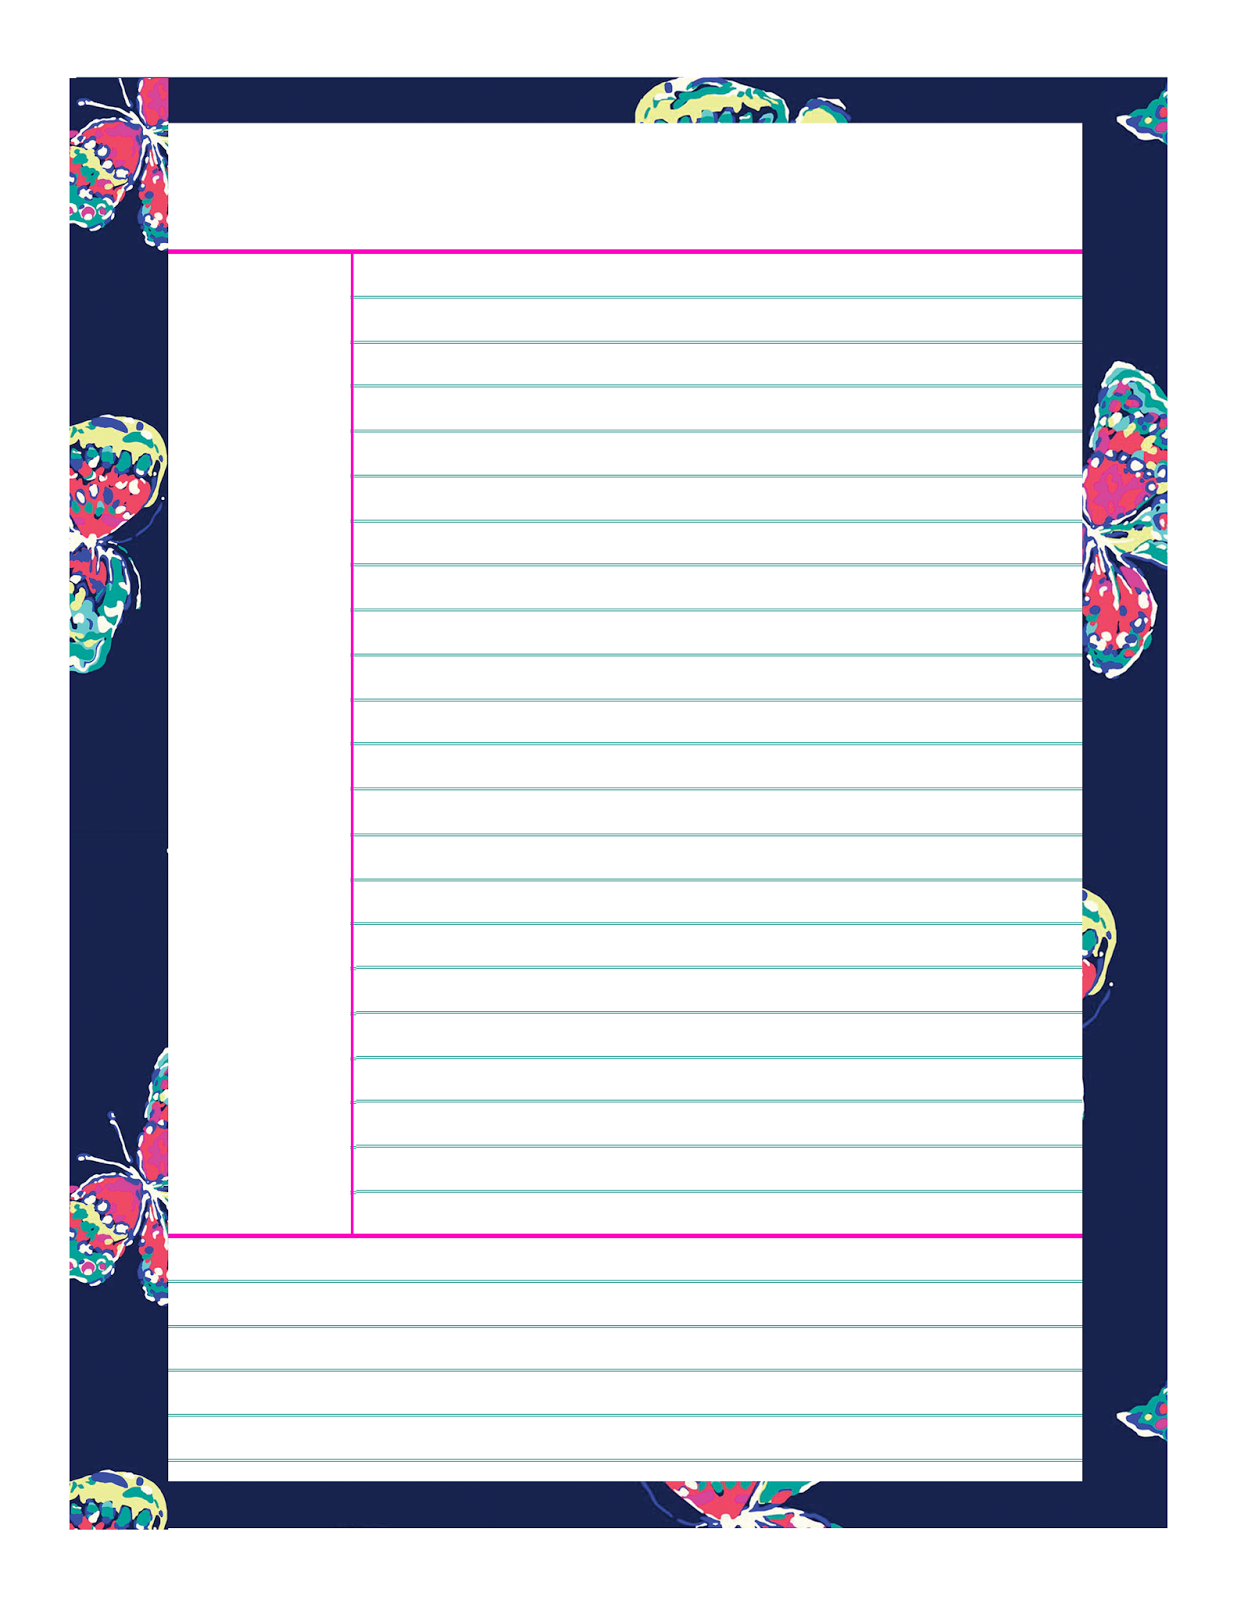 5 Images of Free Printable Note Taking Templates